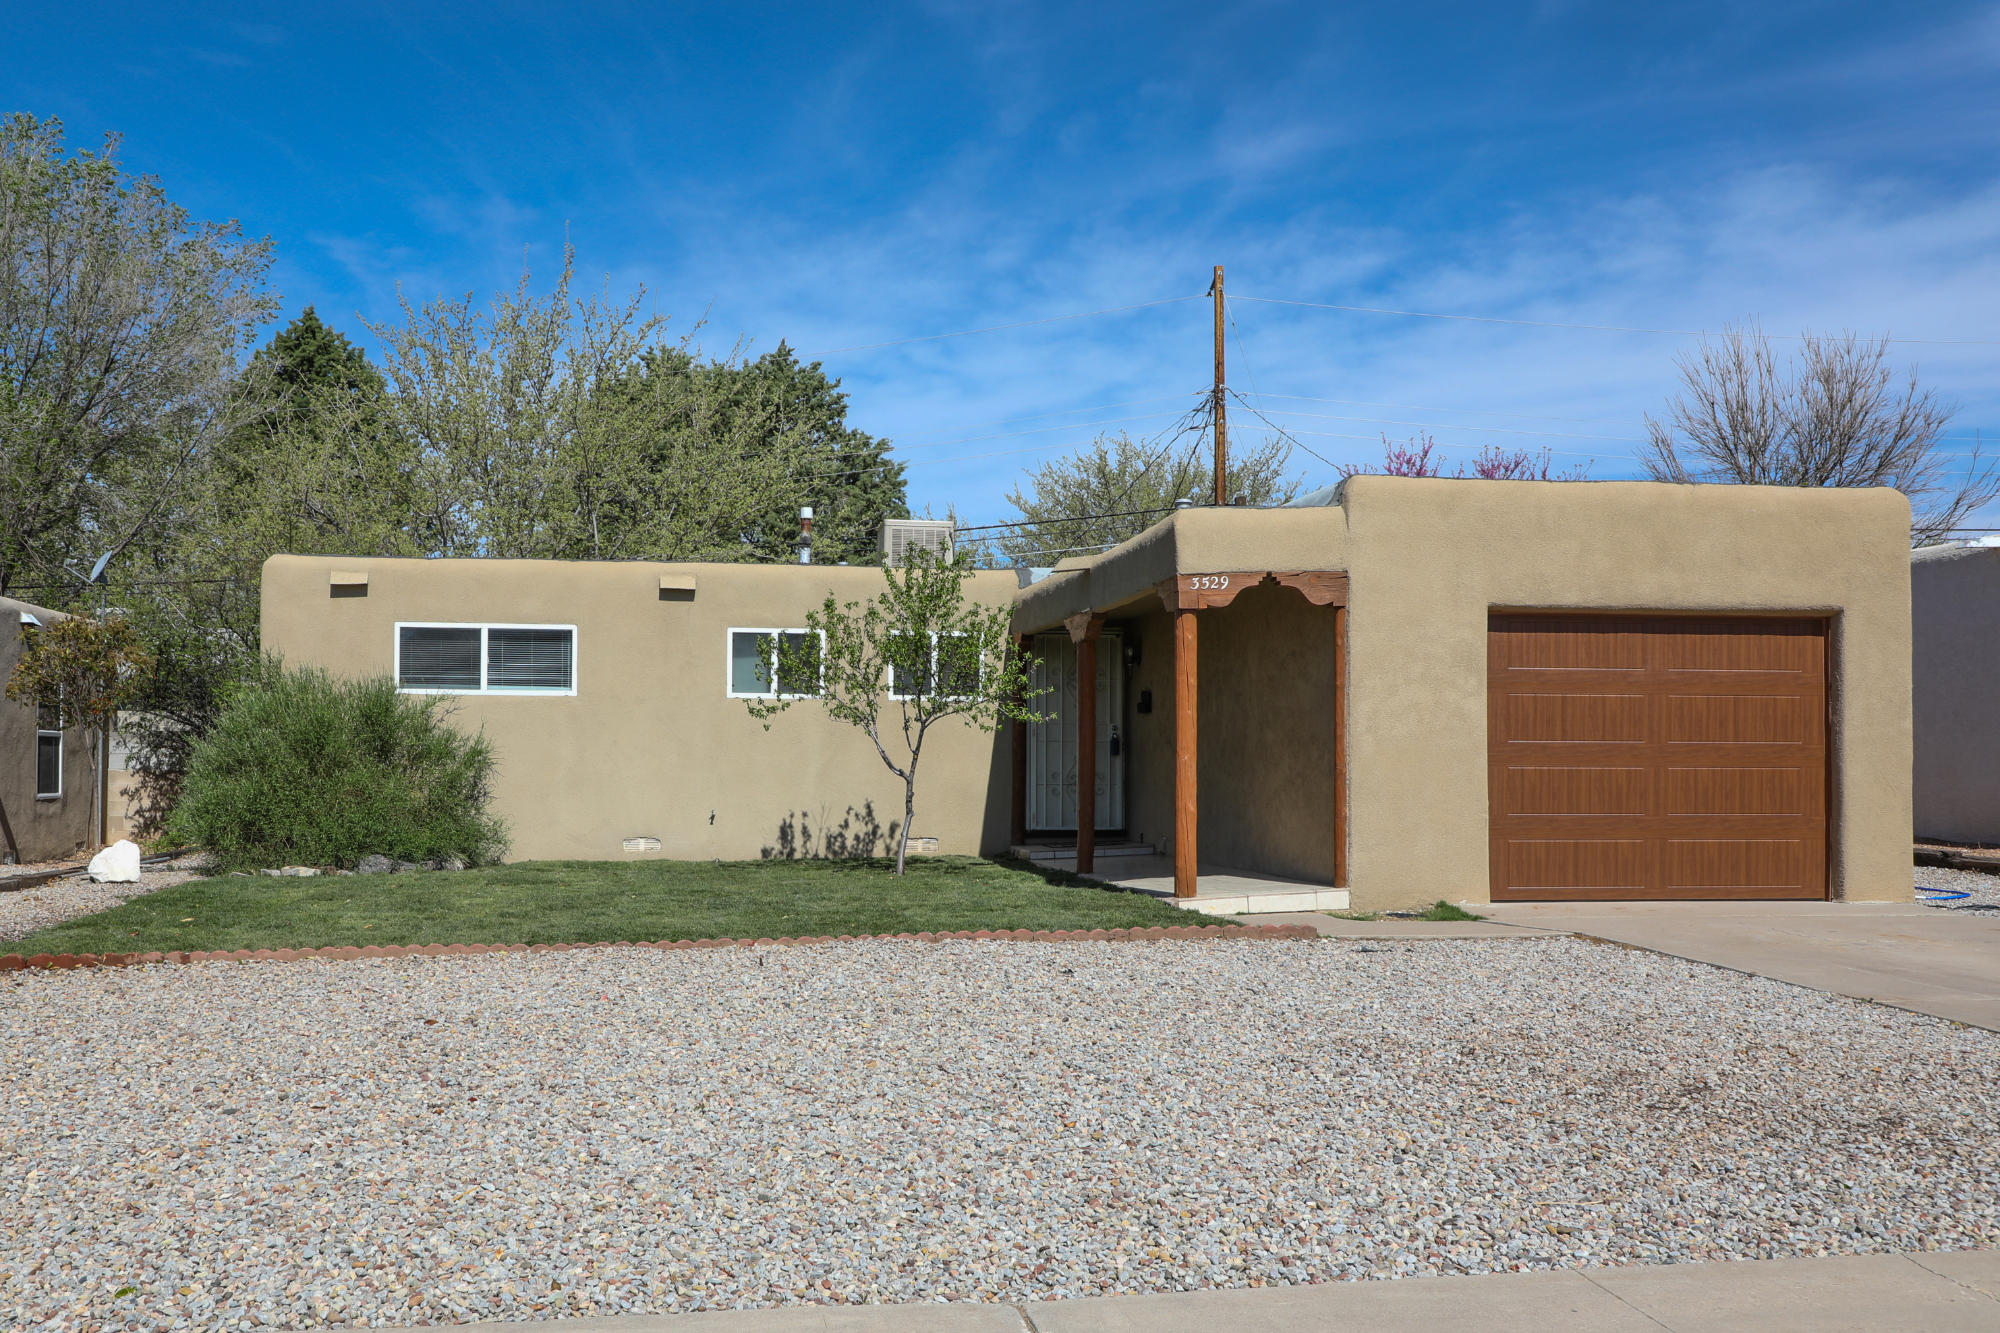 Come see this beautiful well-maintained home in the heart of Albuquerque! Nearby shopping, schools, and entertainment! Decorative wooden beams and corbels outside with a view of the Sandias. Refinished original hardwood floors. The home was updated with a new heater and evaporative cooler in 2016.